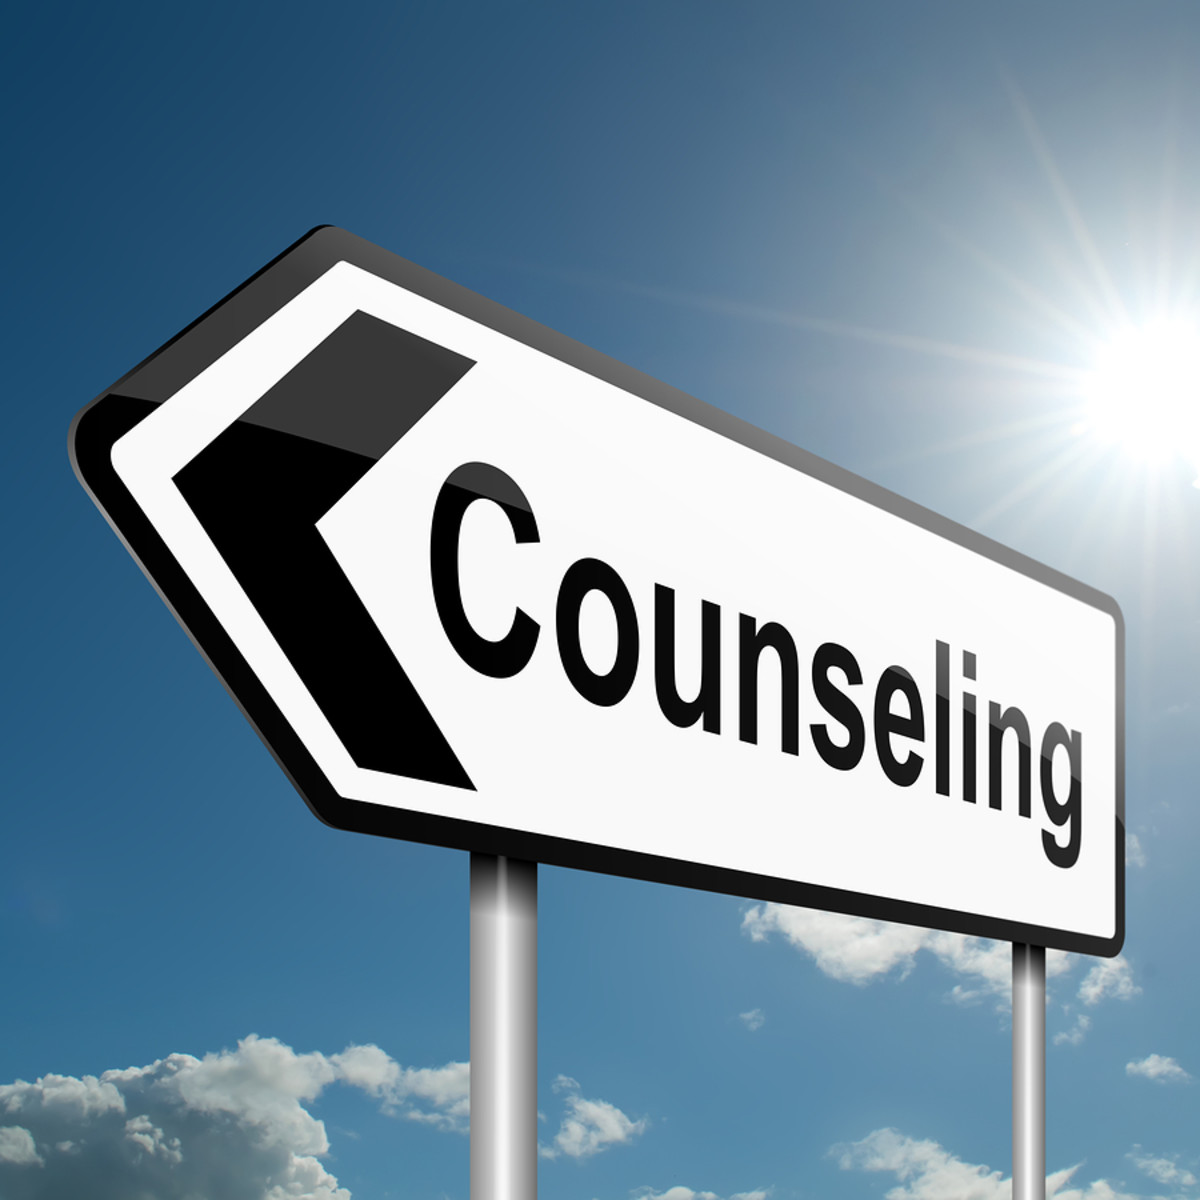 how-to-pass-the-nce-and-cpce-counseling-exams